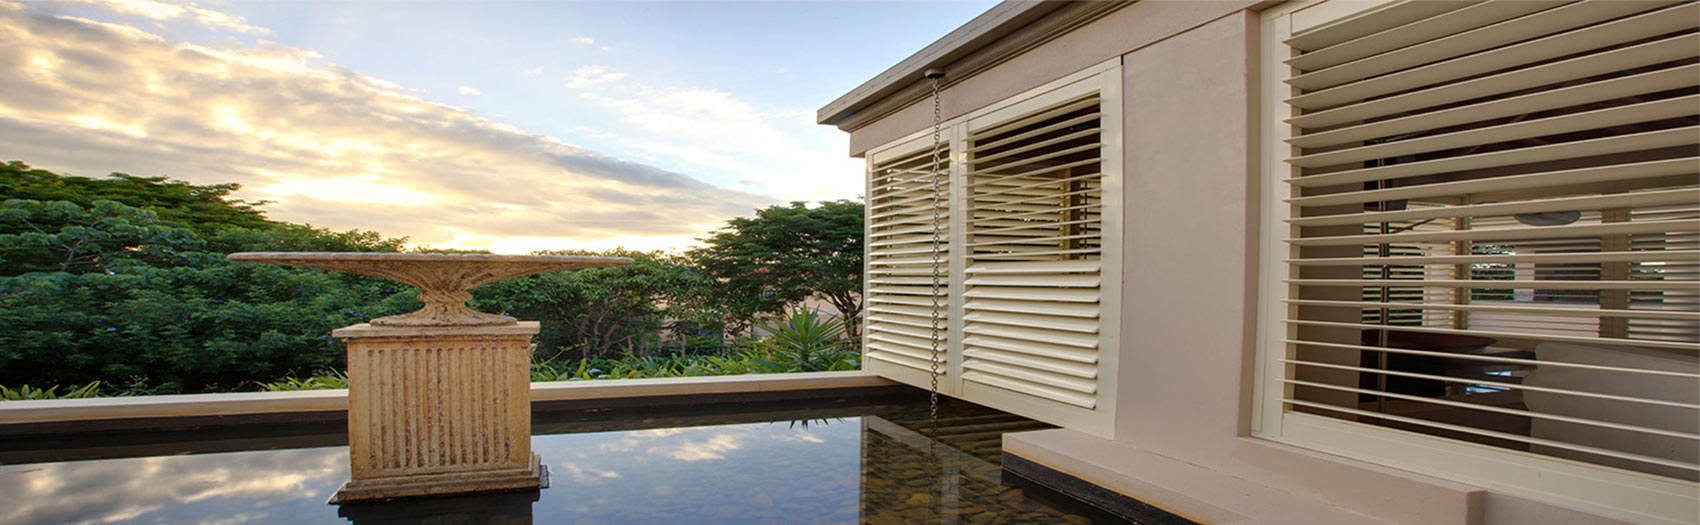 Outdoor Poolside Patio Living with Ambient Aluminium Security Shutters as the Feature